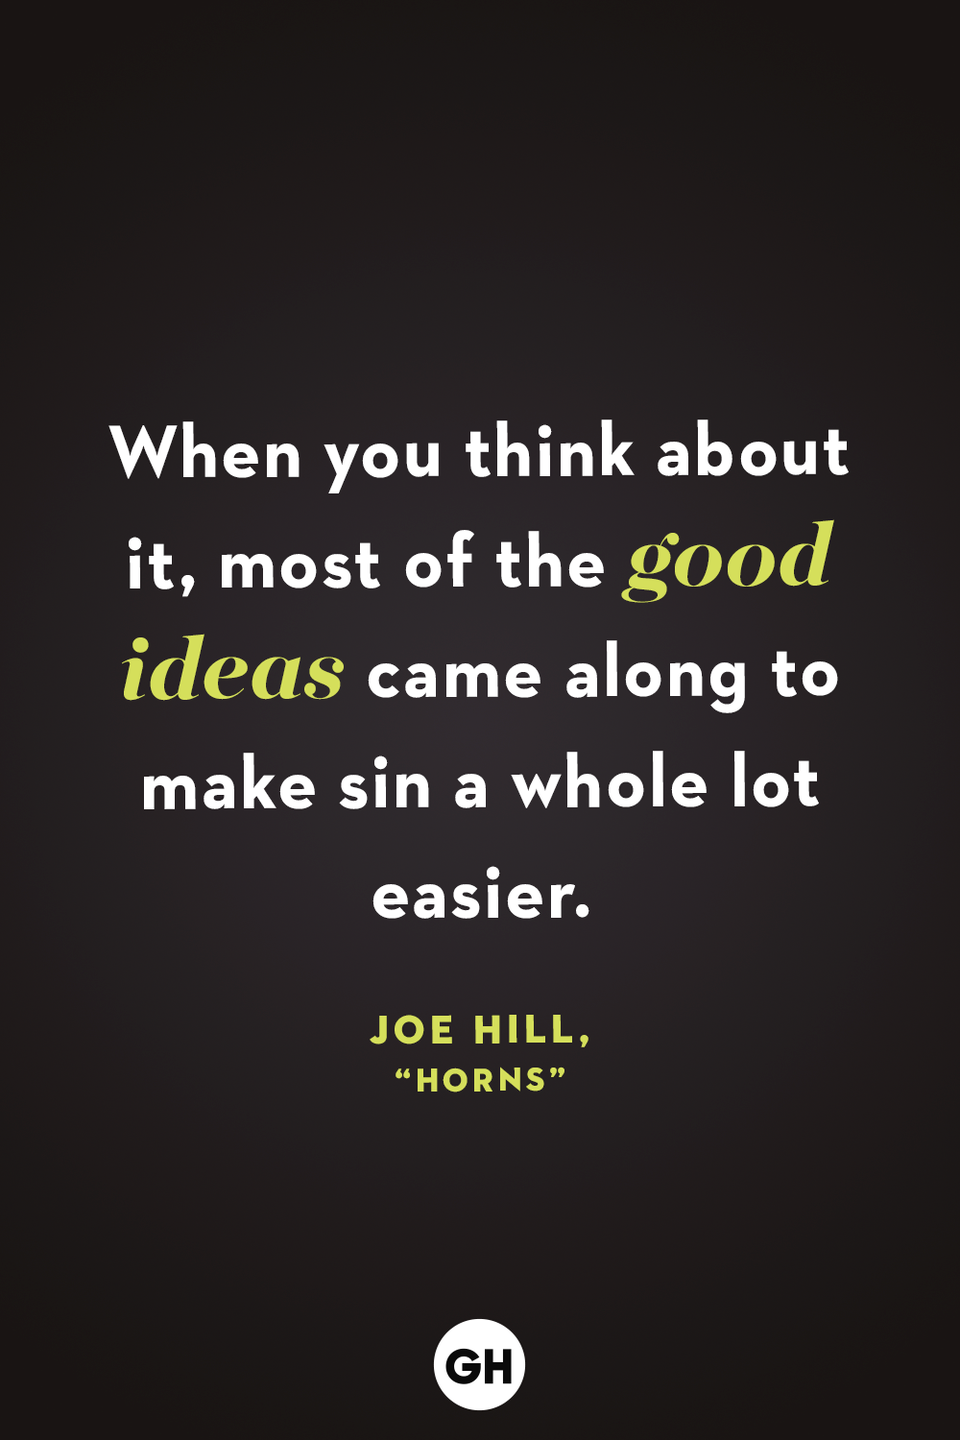 <p>When you think about it, most of the good ideas came along to make sin a whole lot easier.</p>